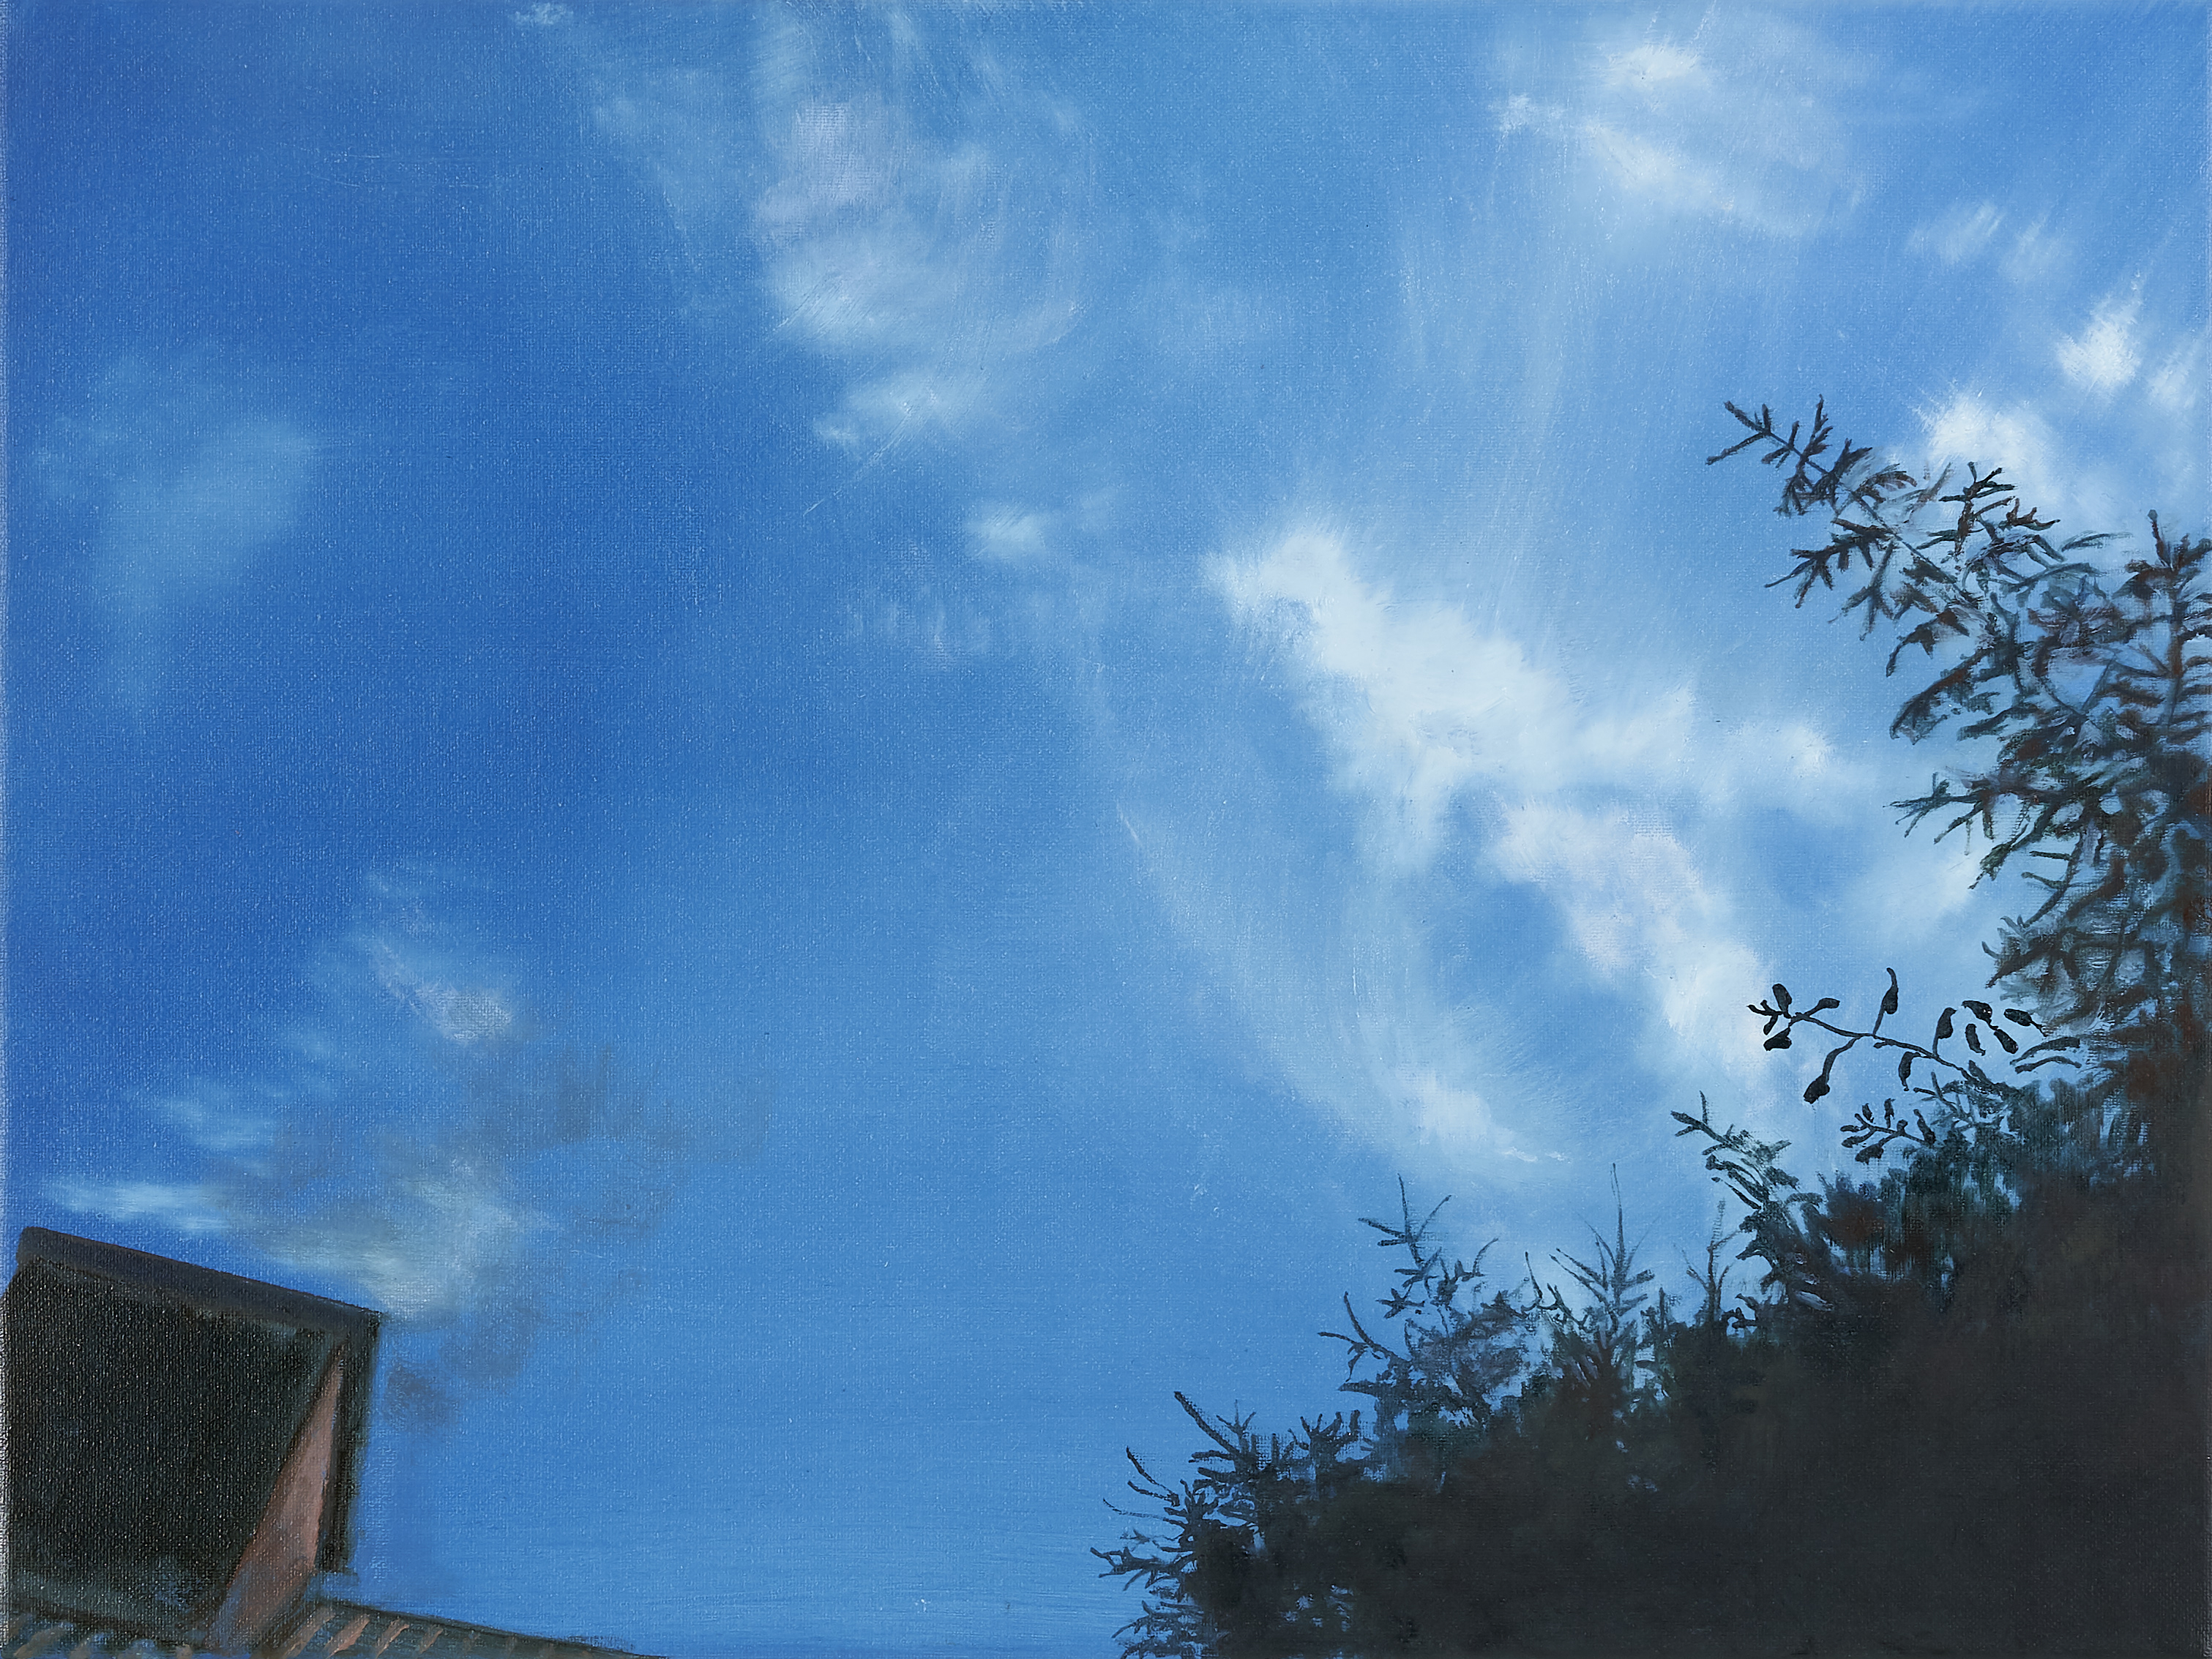 Thinking About The Little Things, Oil on Canvas, 30cm x 40cm (Photography Dickon Whitehead)